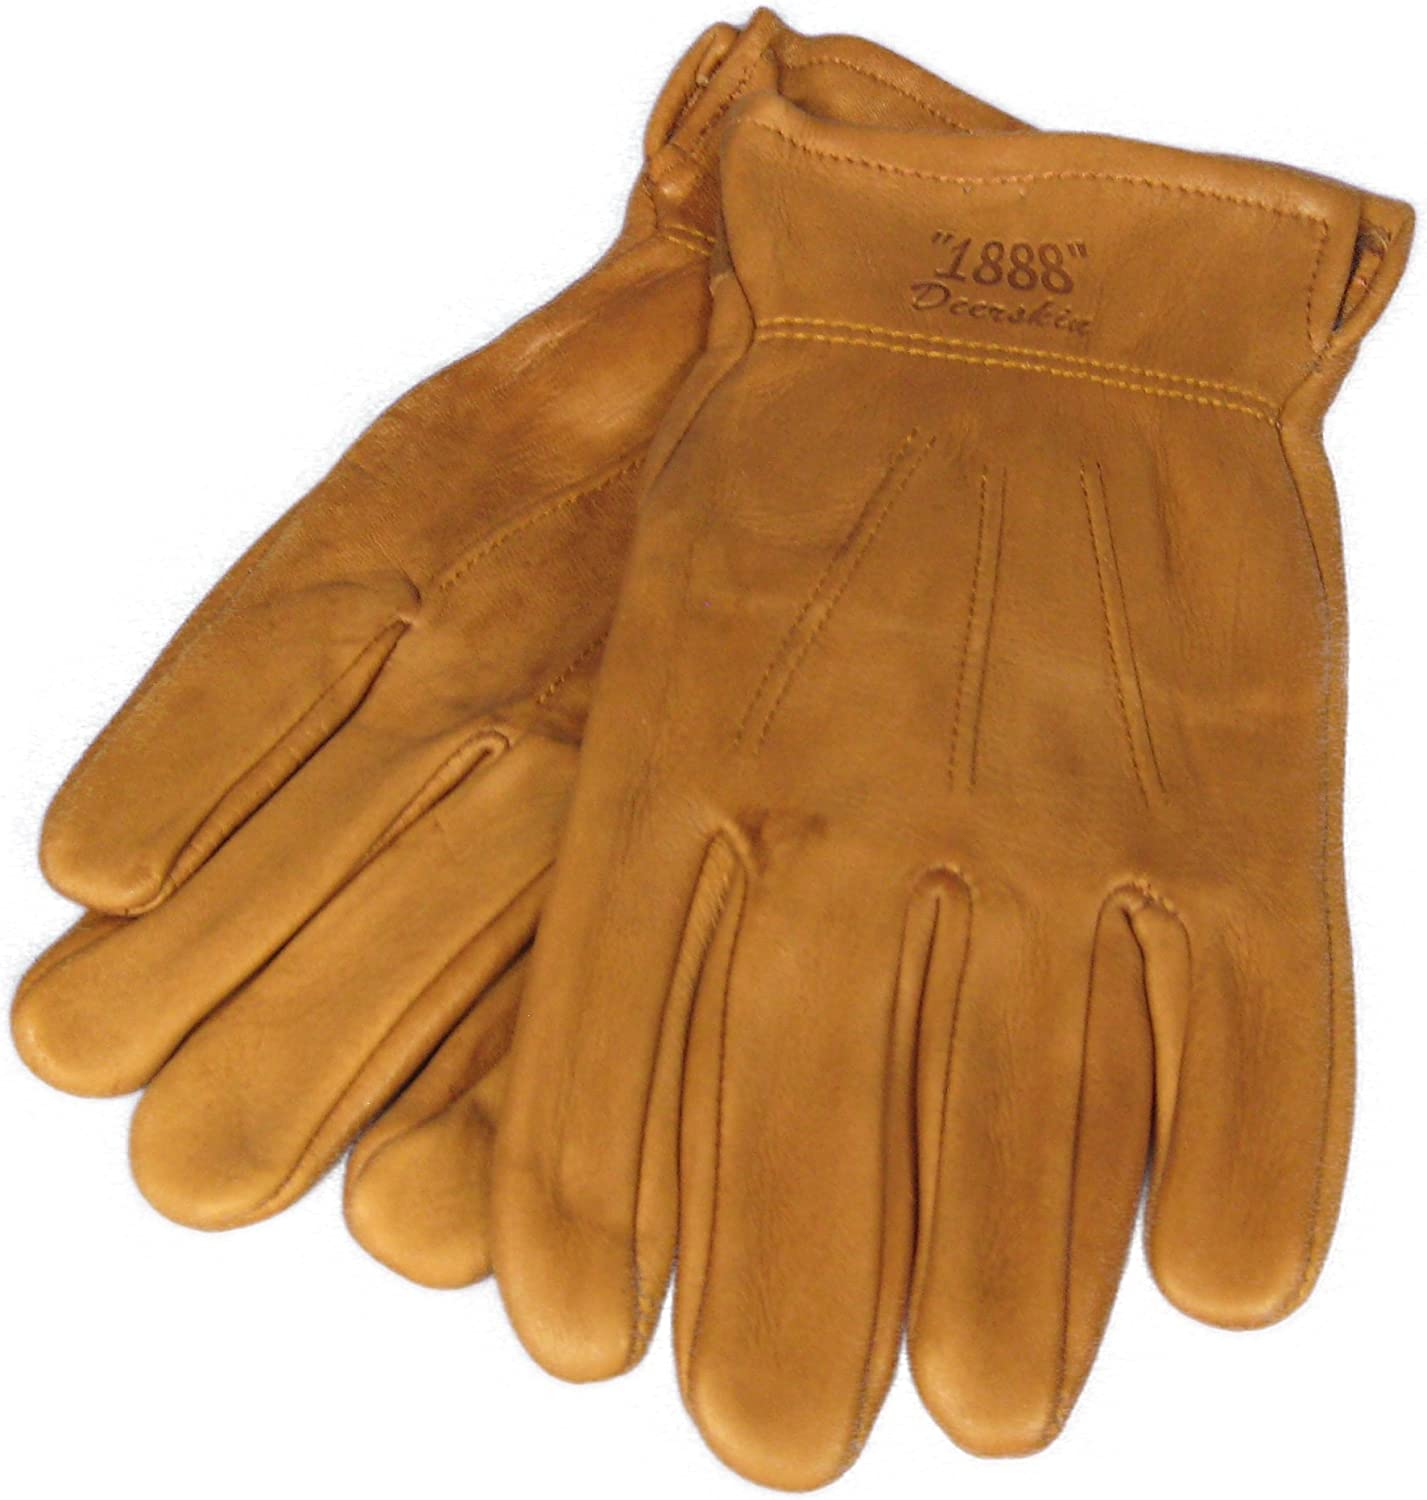 Tuff Mate Soft Leather Work Gloves